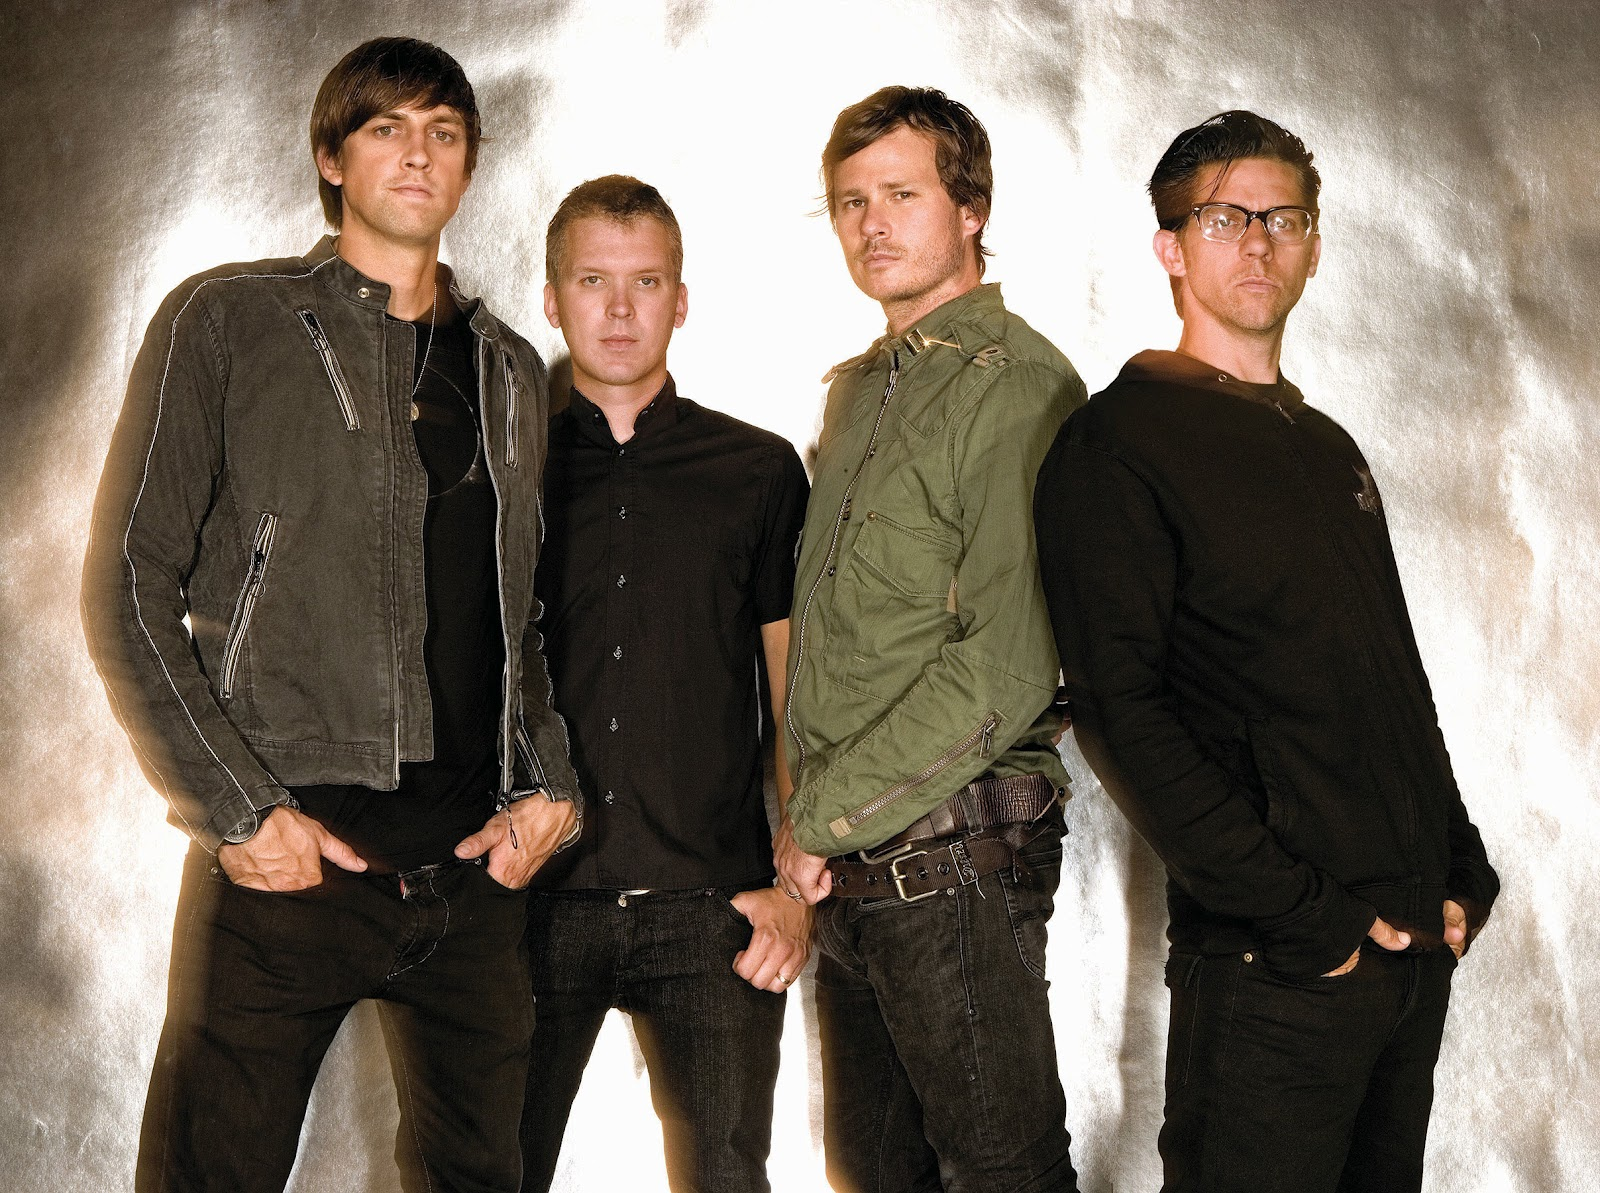 angels and airwaves photo shoot 14 Angels and Airwaves libera audição de novo álbum